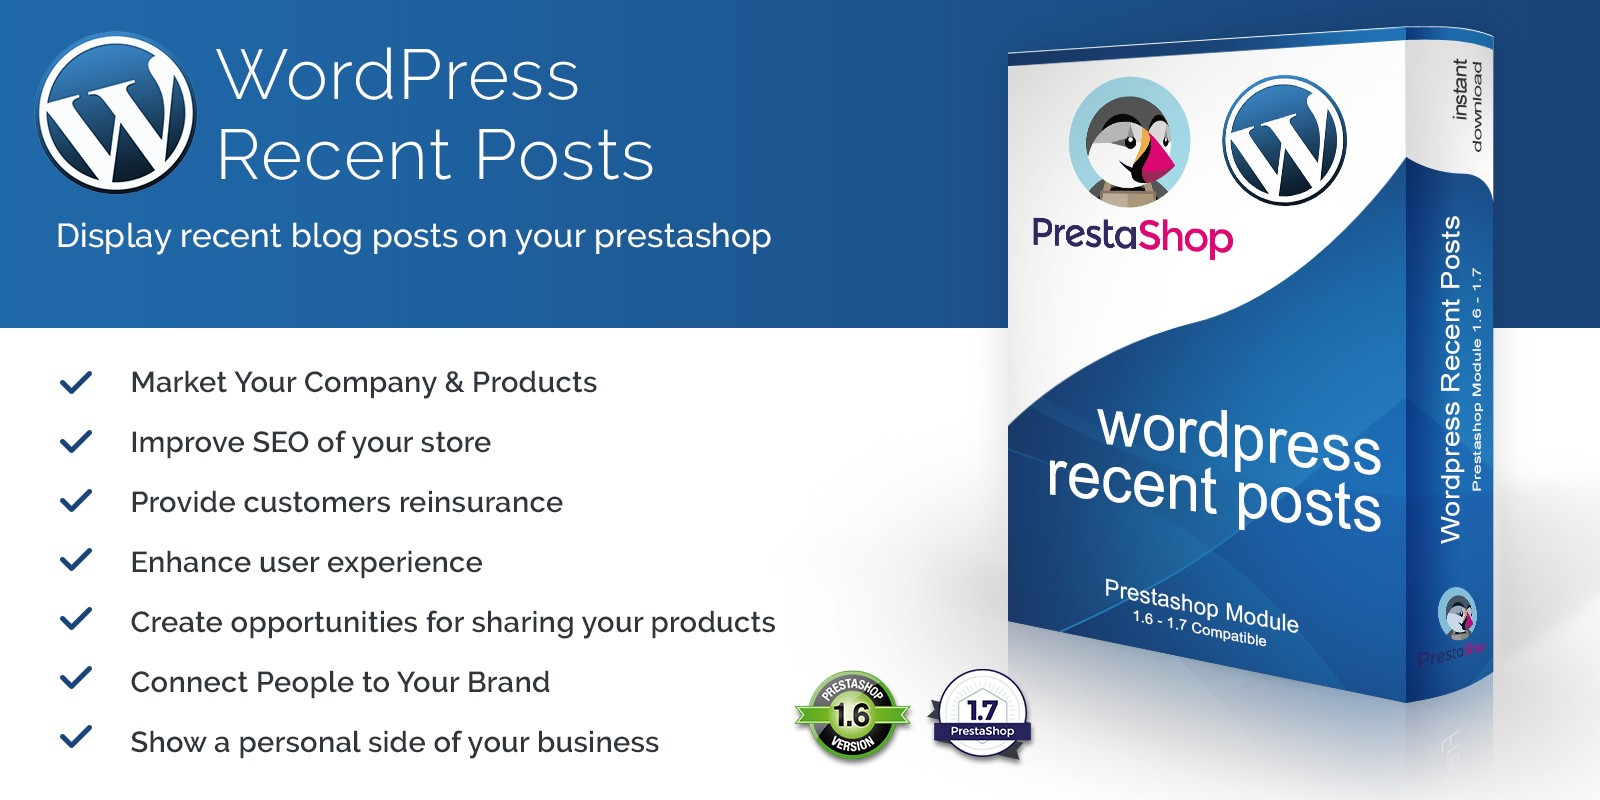 WordPress Recent Blog Posts for PrestaShop